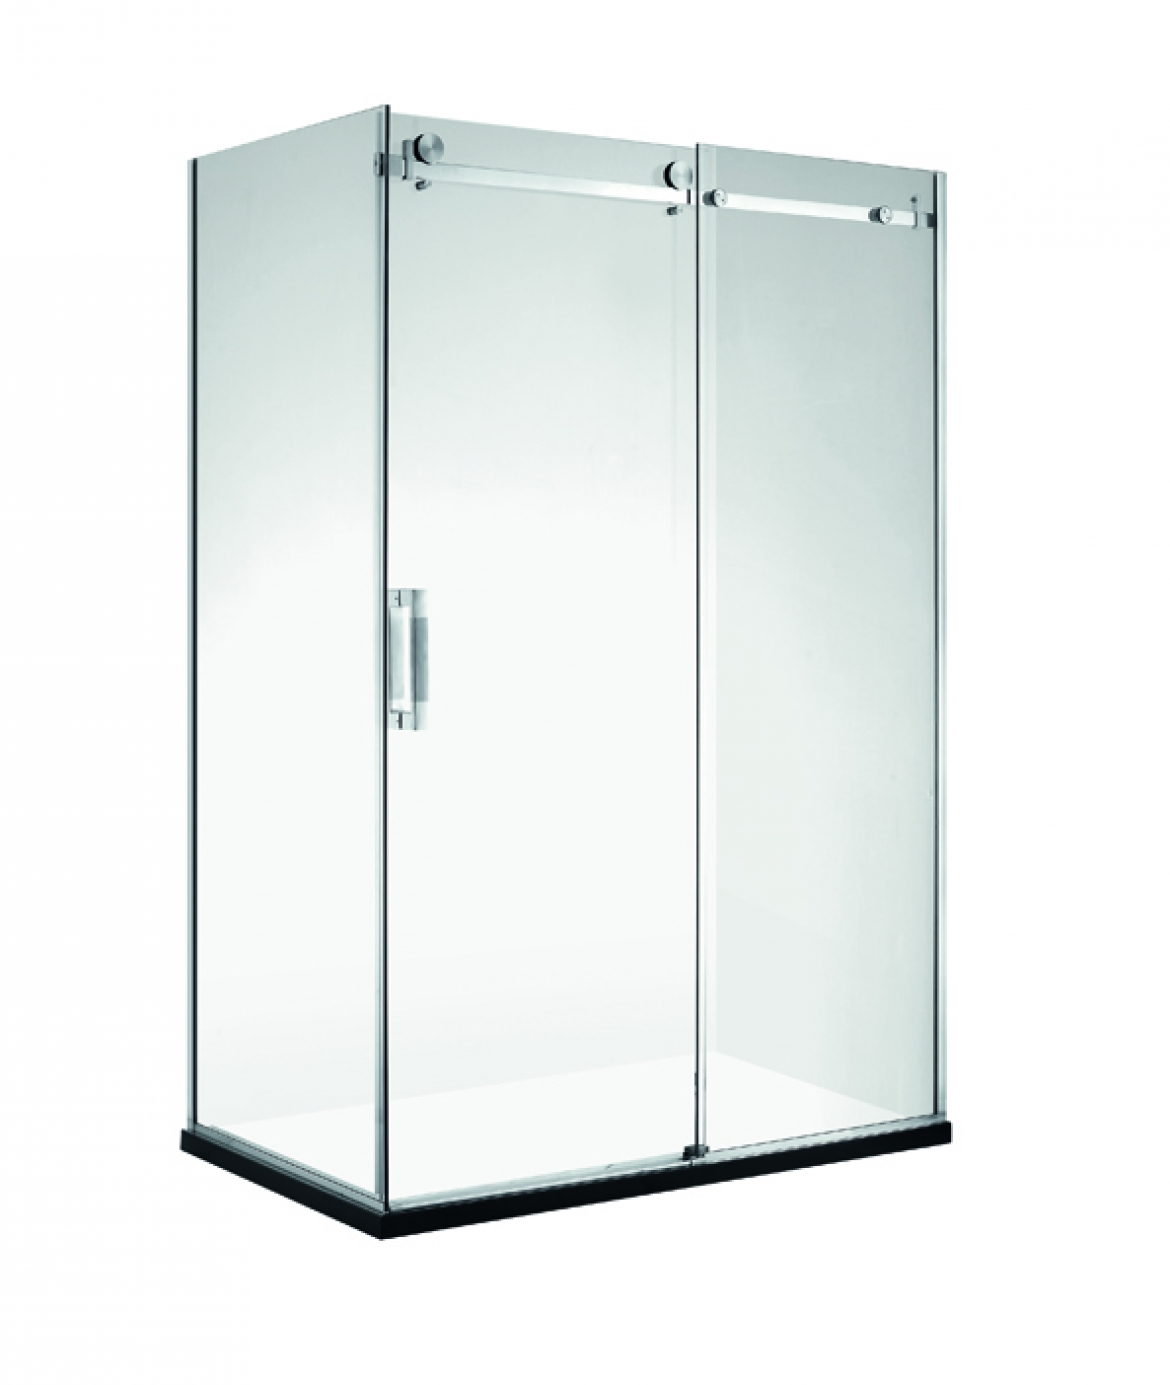 frameless shower screen [sliding door]